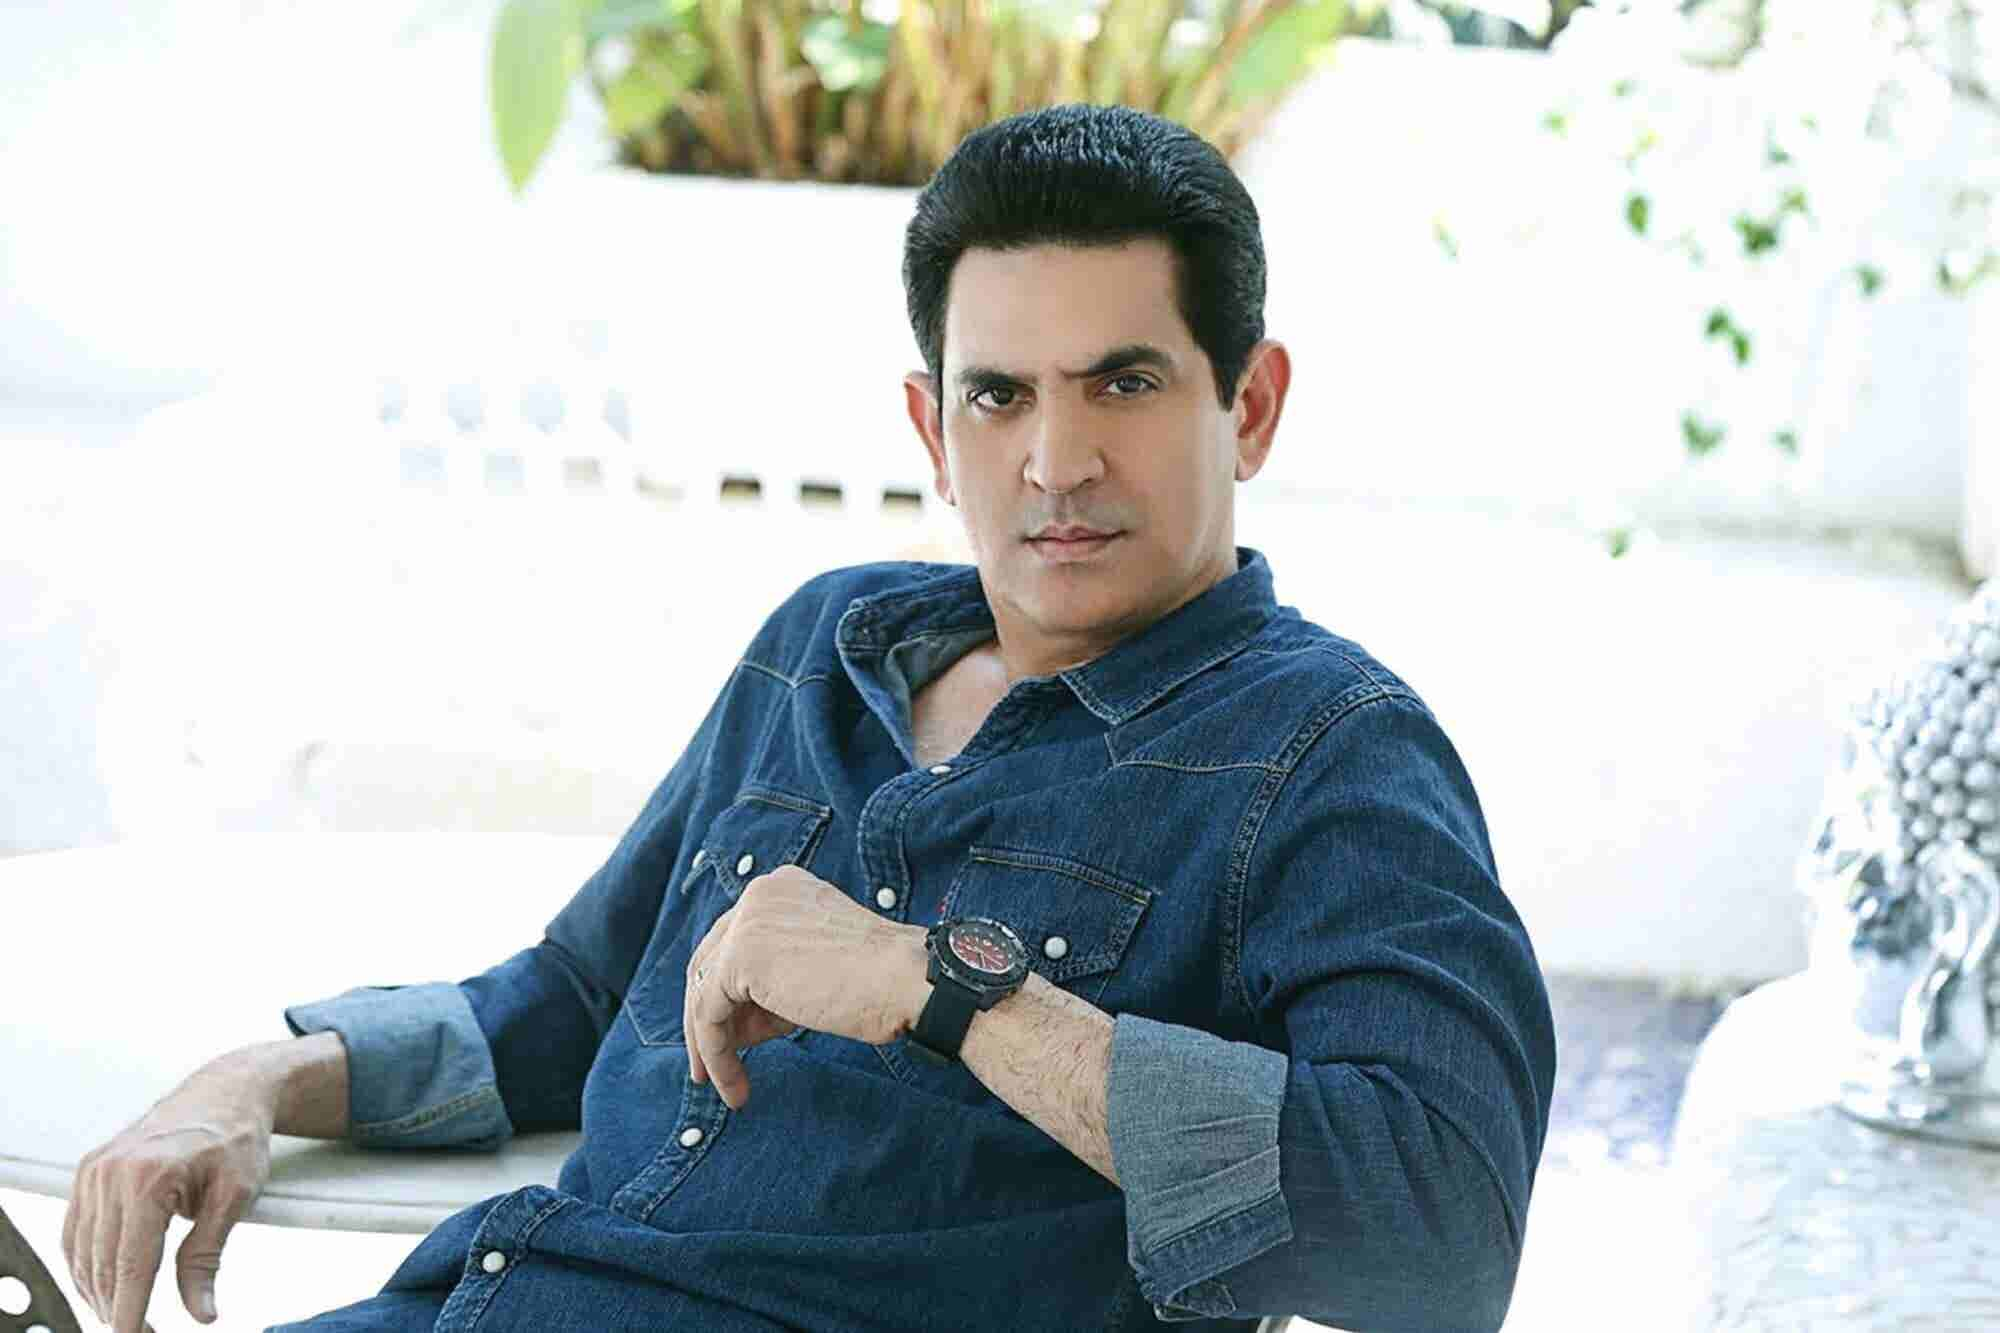 Women-led Movies and Biopics Are Here to Stay Says Bollywood Director Omung Kumar